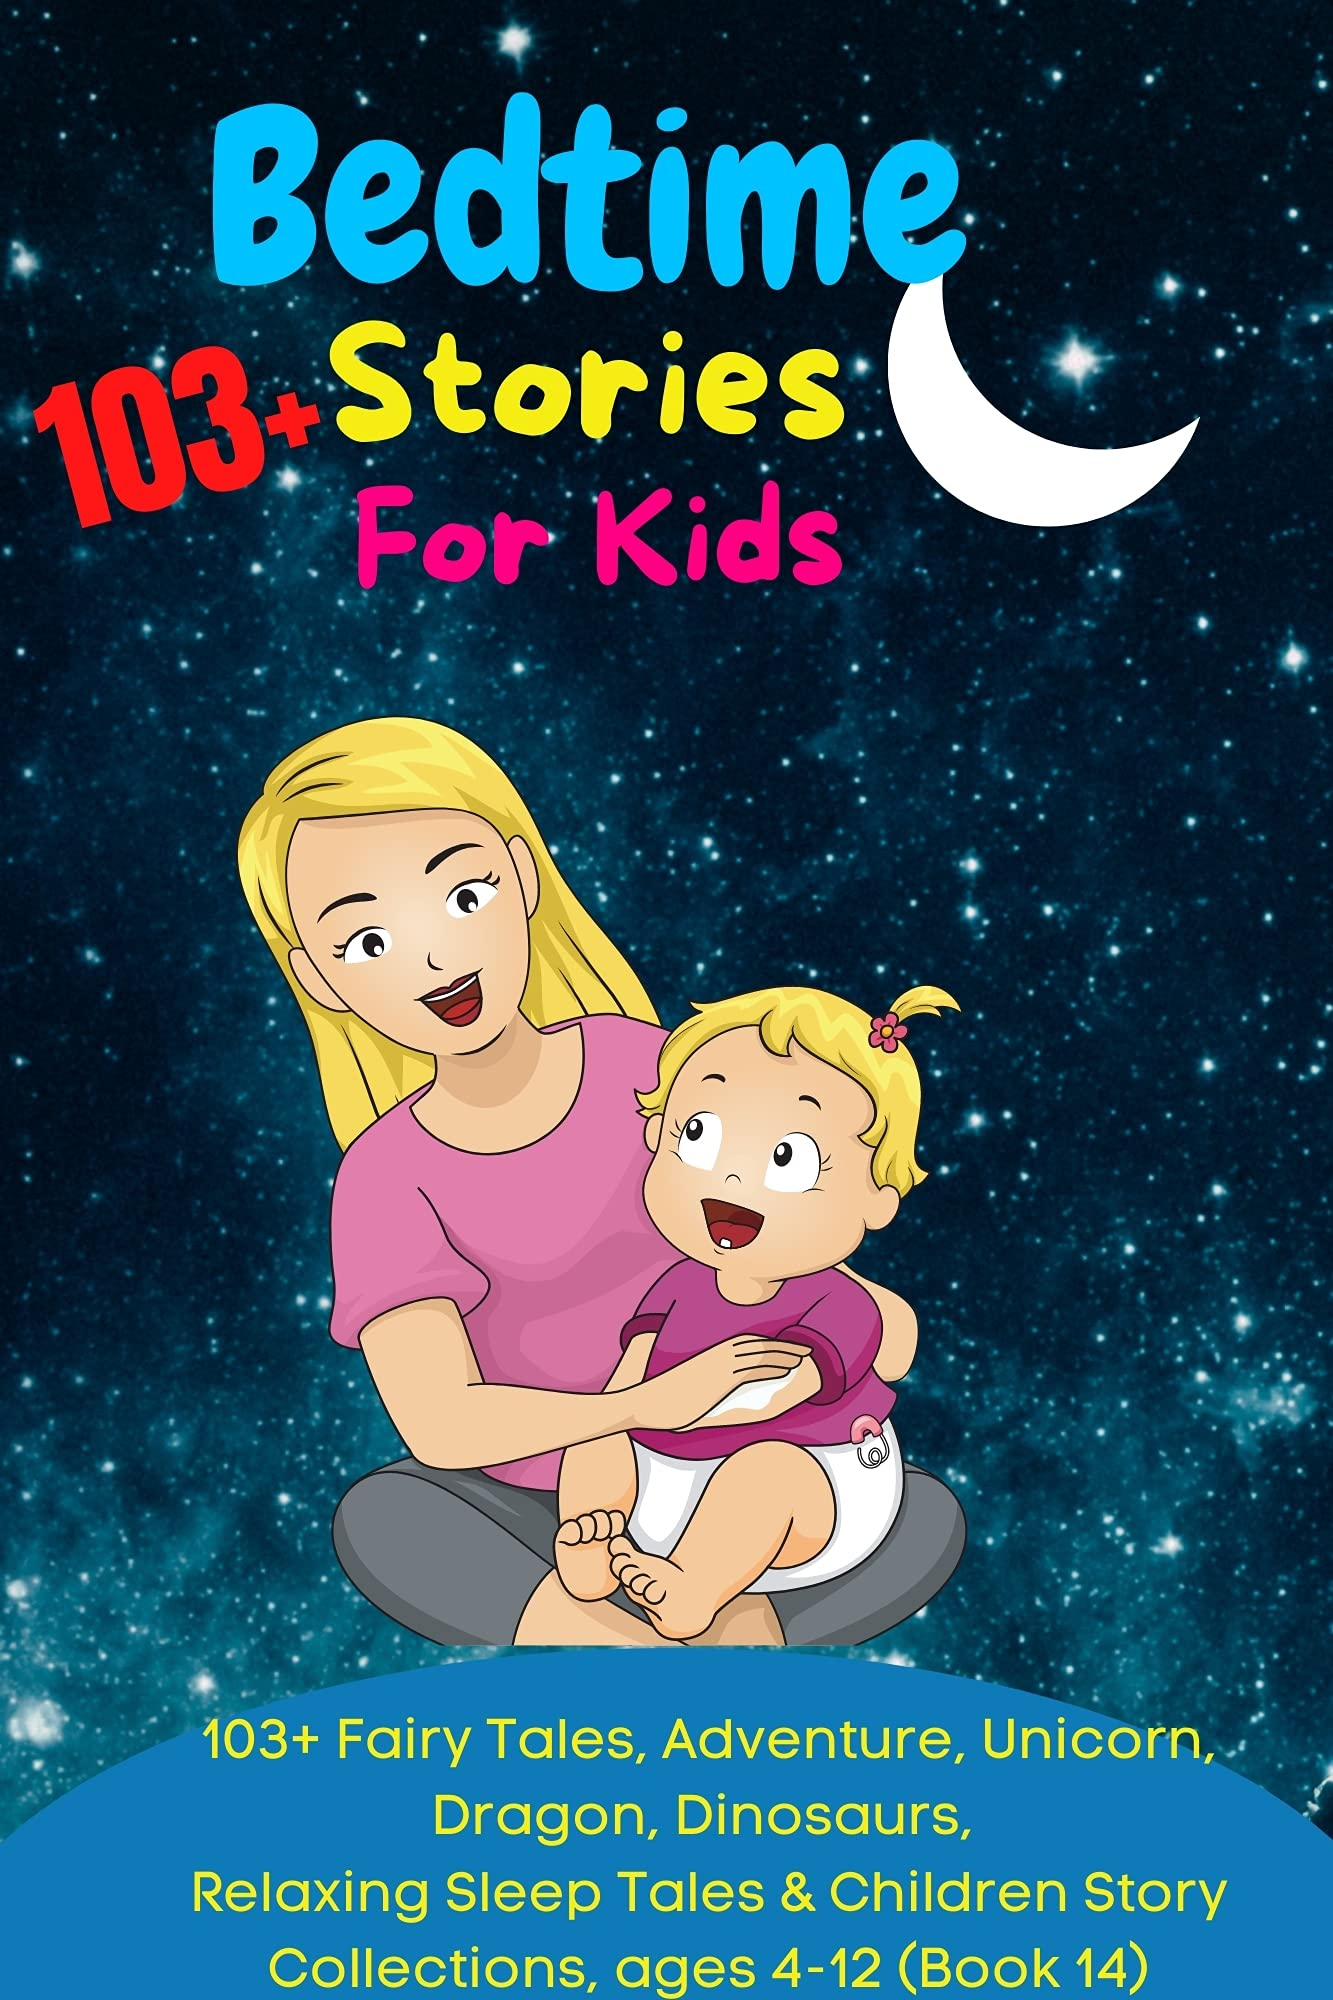 Bedtime Stories For Kids: 103+ Fairy Tales, Adventure, Unicorn, Dragon, Dinosaurs, Relaxing Sleep Tales & Children Story Collections, ages 4-12 (Book 14)